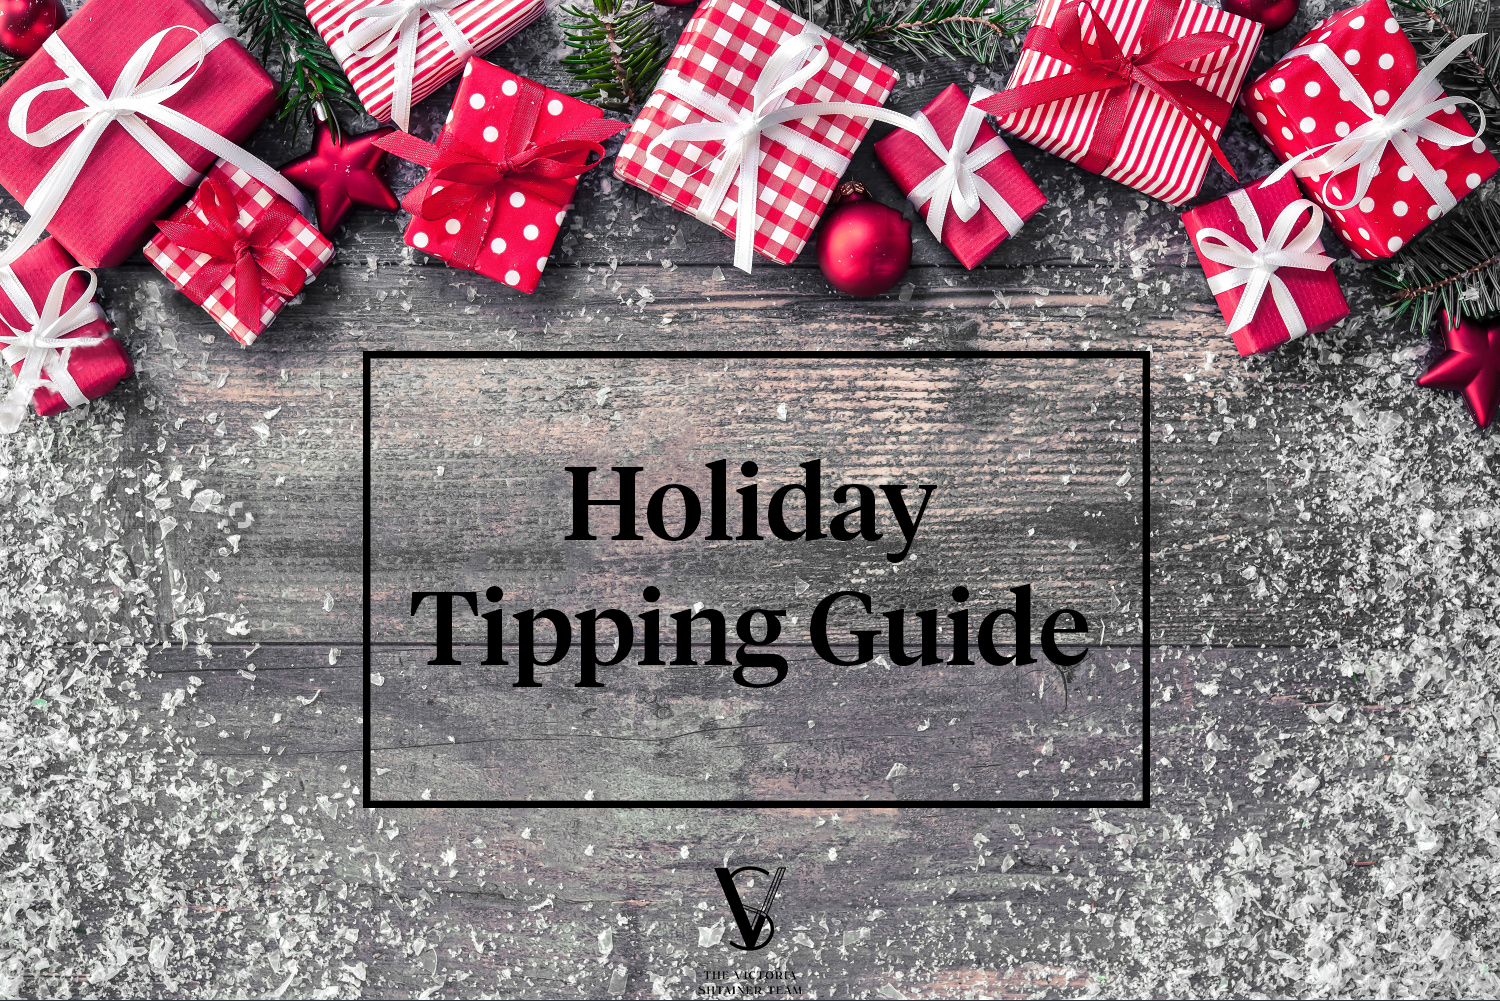 NYC Holiday Tipping Guide.jpeg